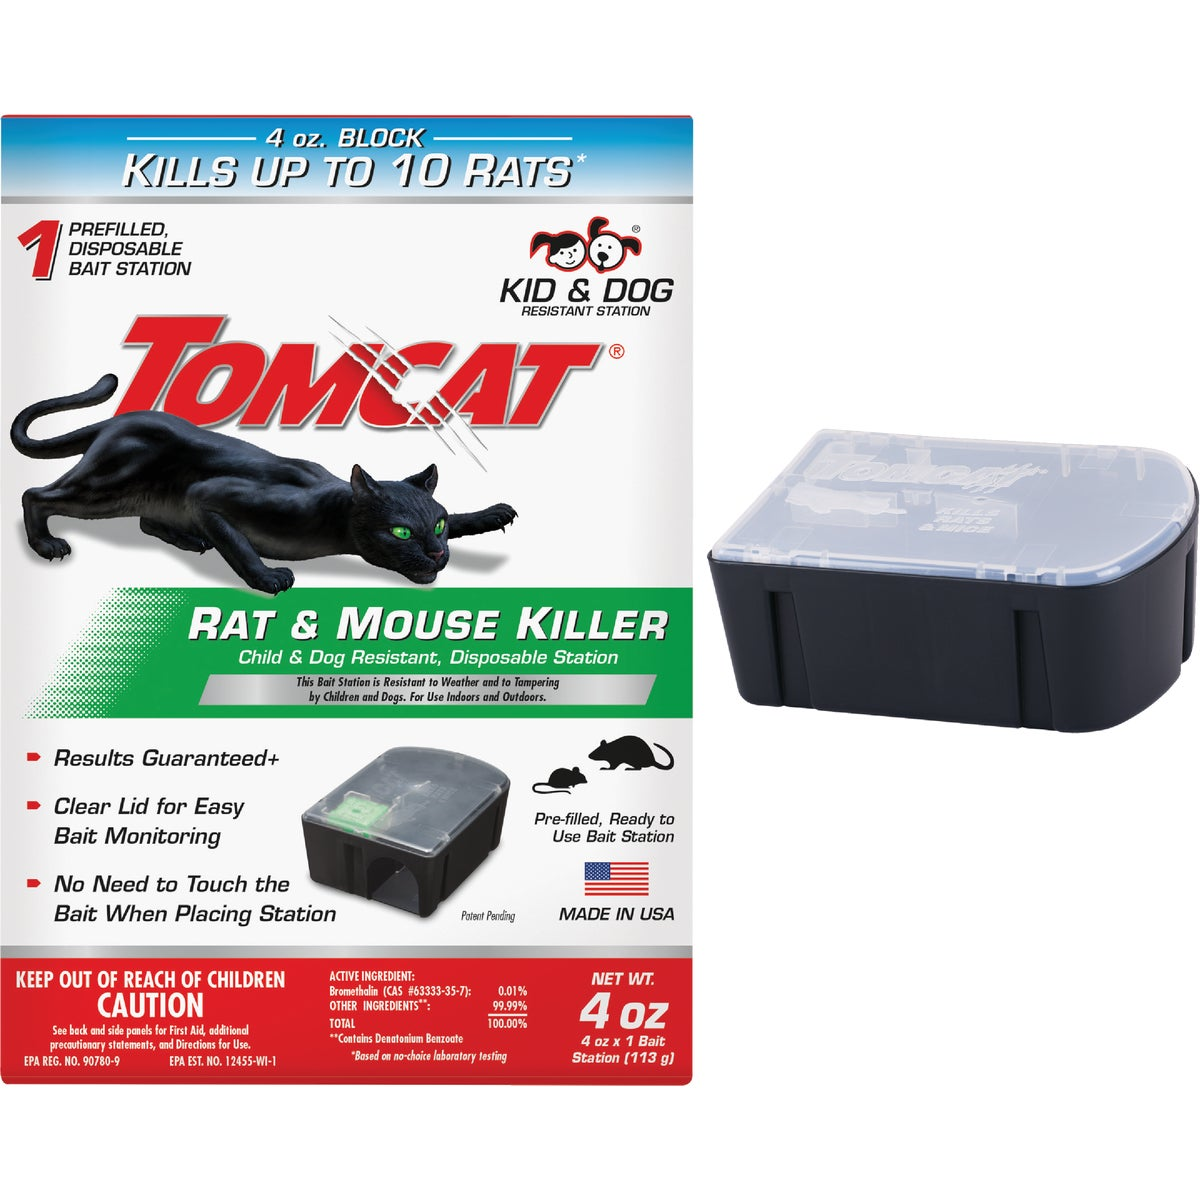 DISPOS RAT BAIT STATION - BL22580 by Motomco Ltd